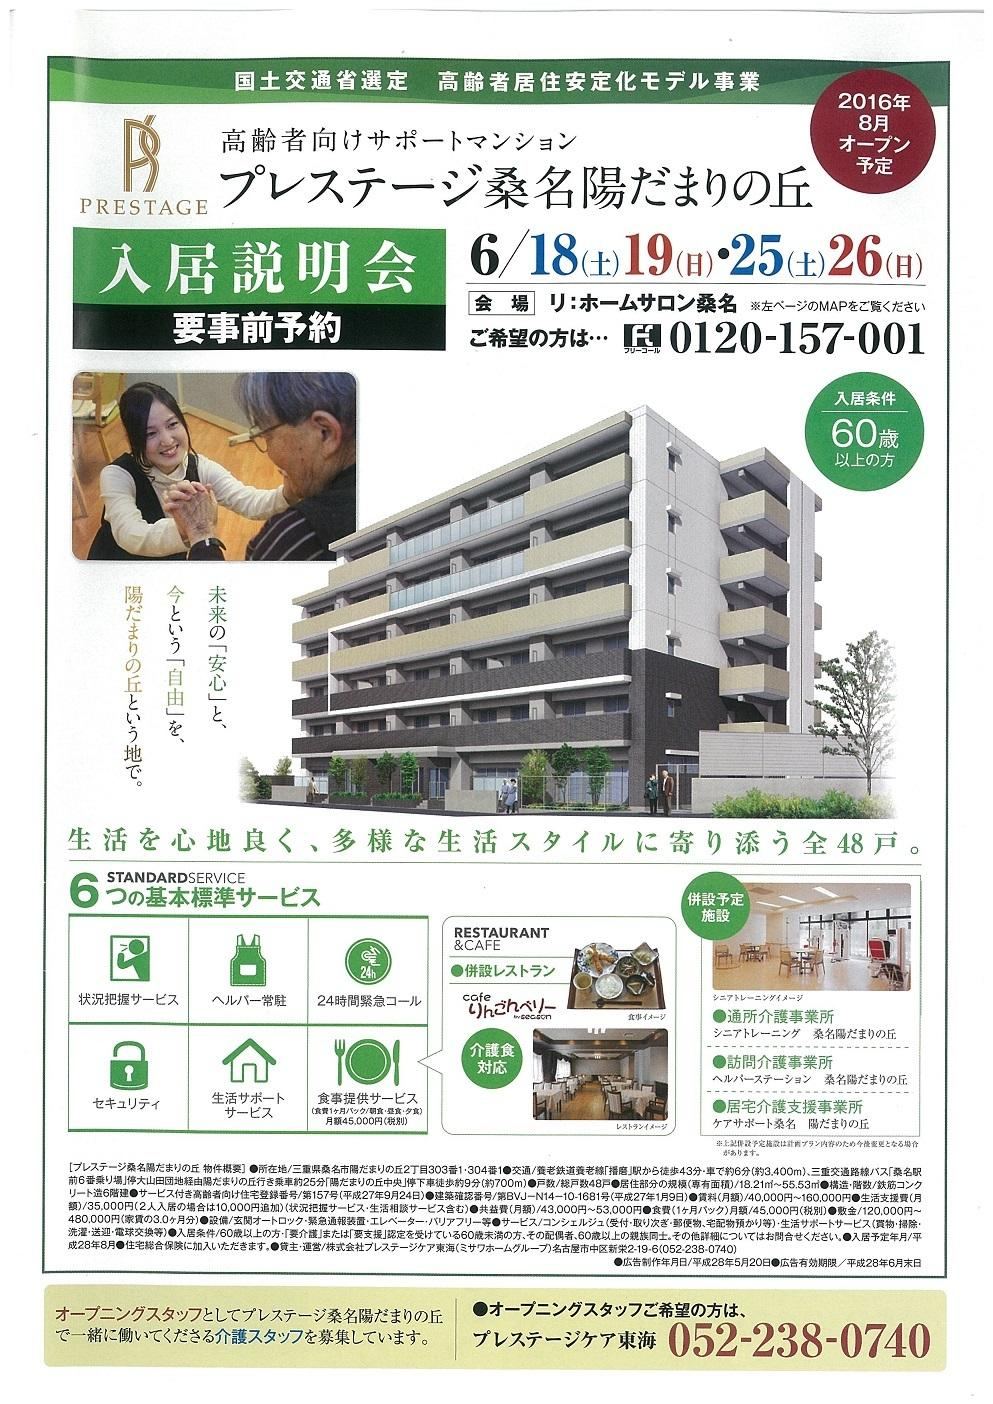 http://www.prestige-care-tokai.co.jp/information/images/a21yoJGLgE.jpg